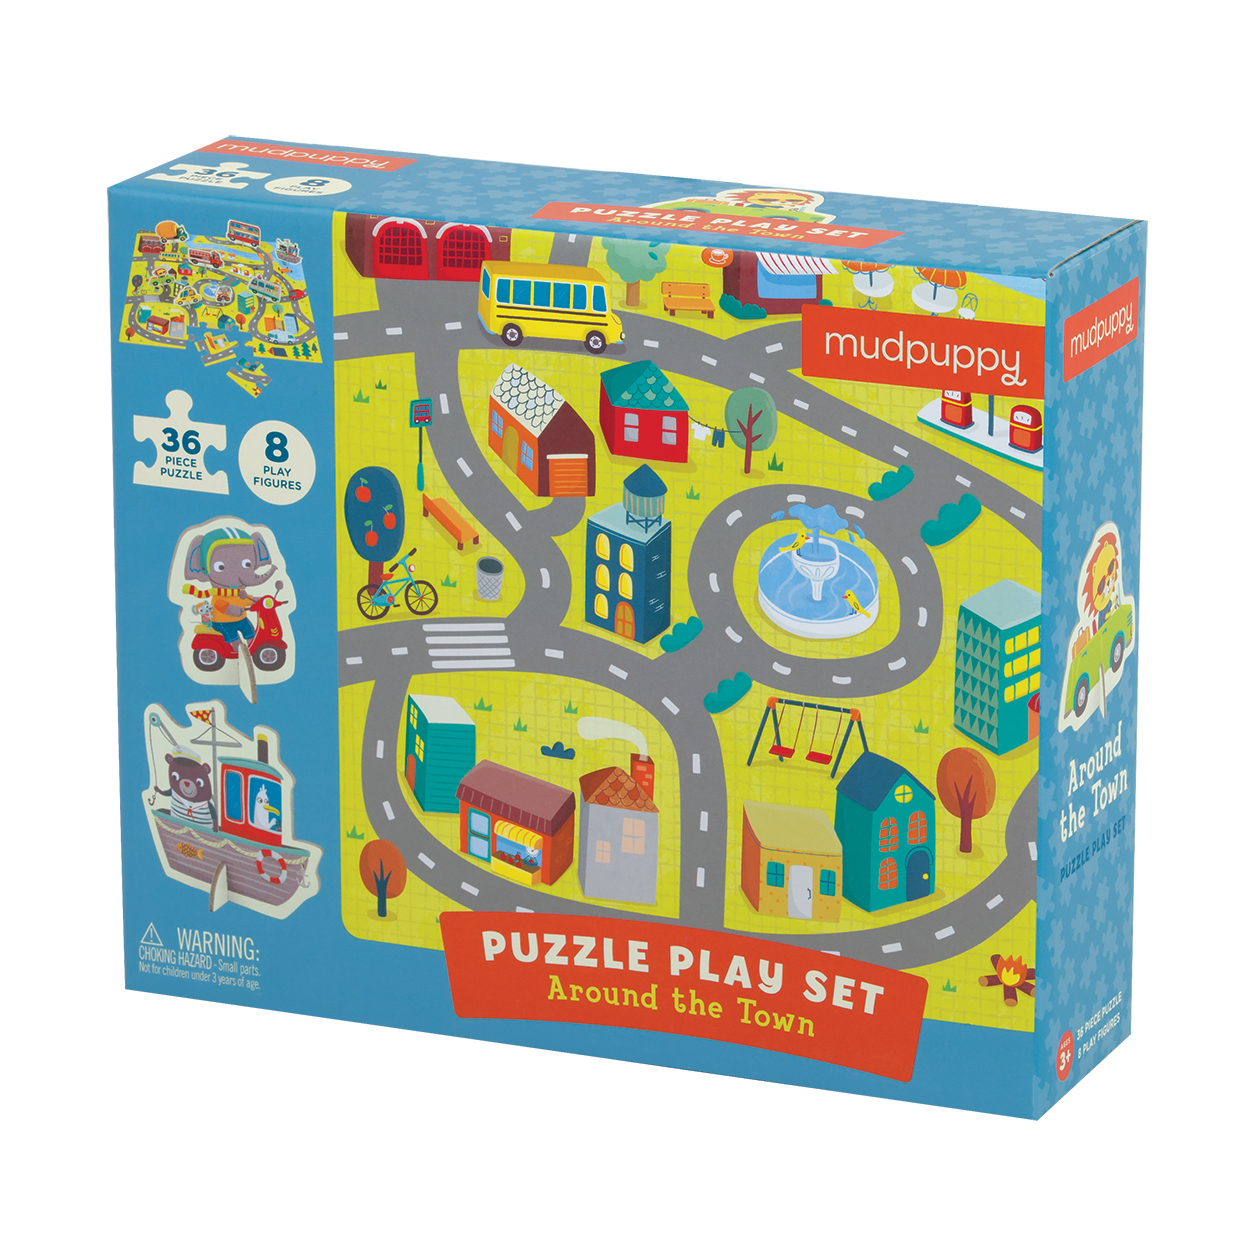 Around the Town Puzzle Play Set - Scratch and Dent Vehicles Jigsaw Puzzle